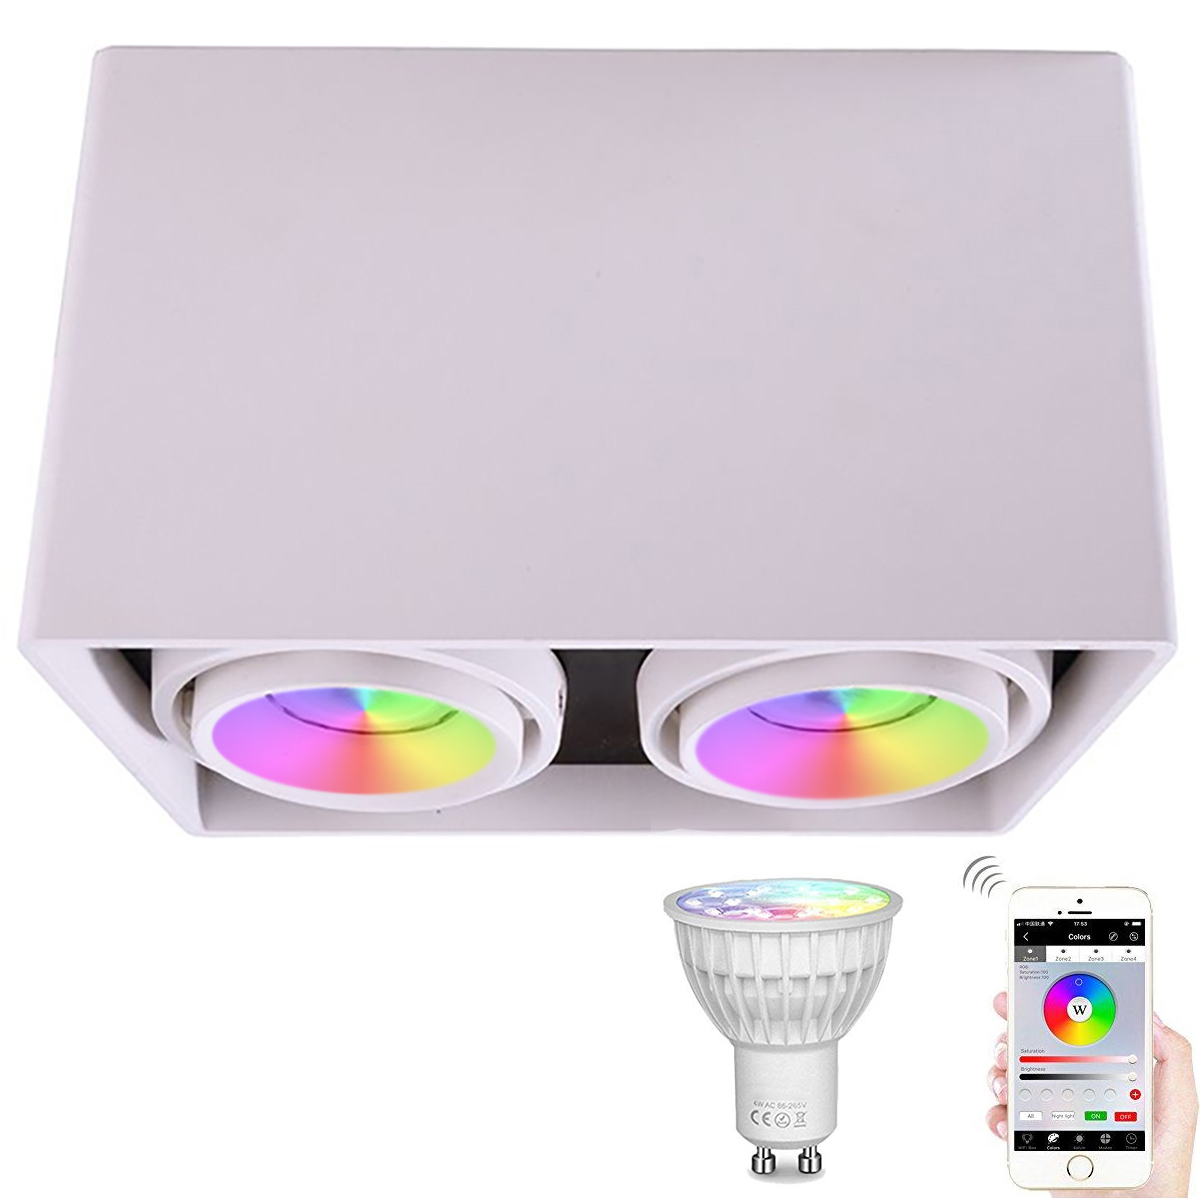 Lamp ceiling double spotlight, multicolor adjustable led ceiling light GU10 RGBW